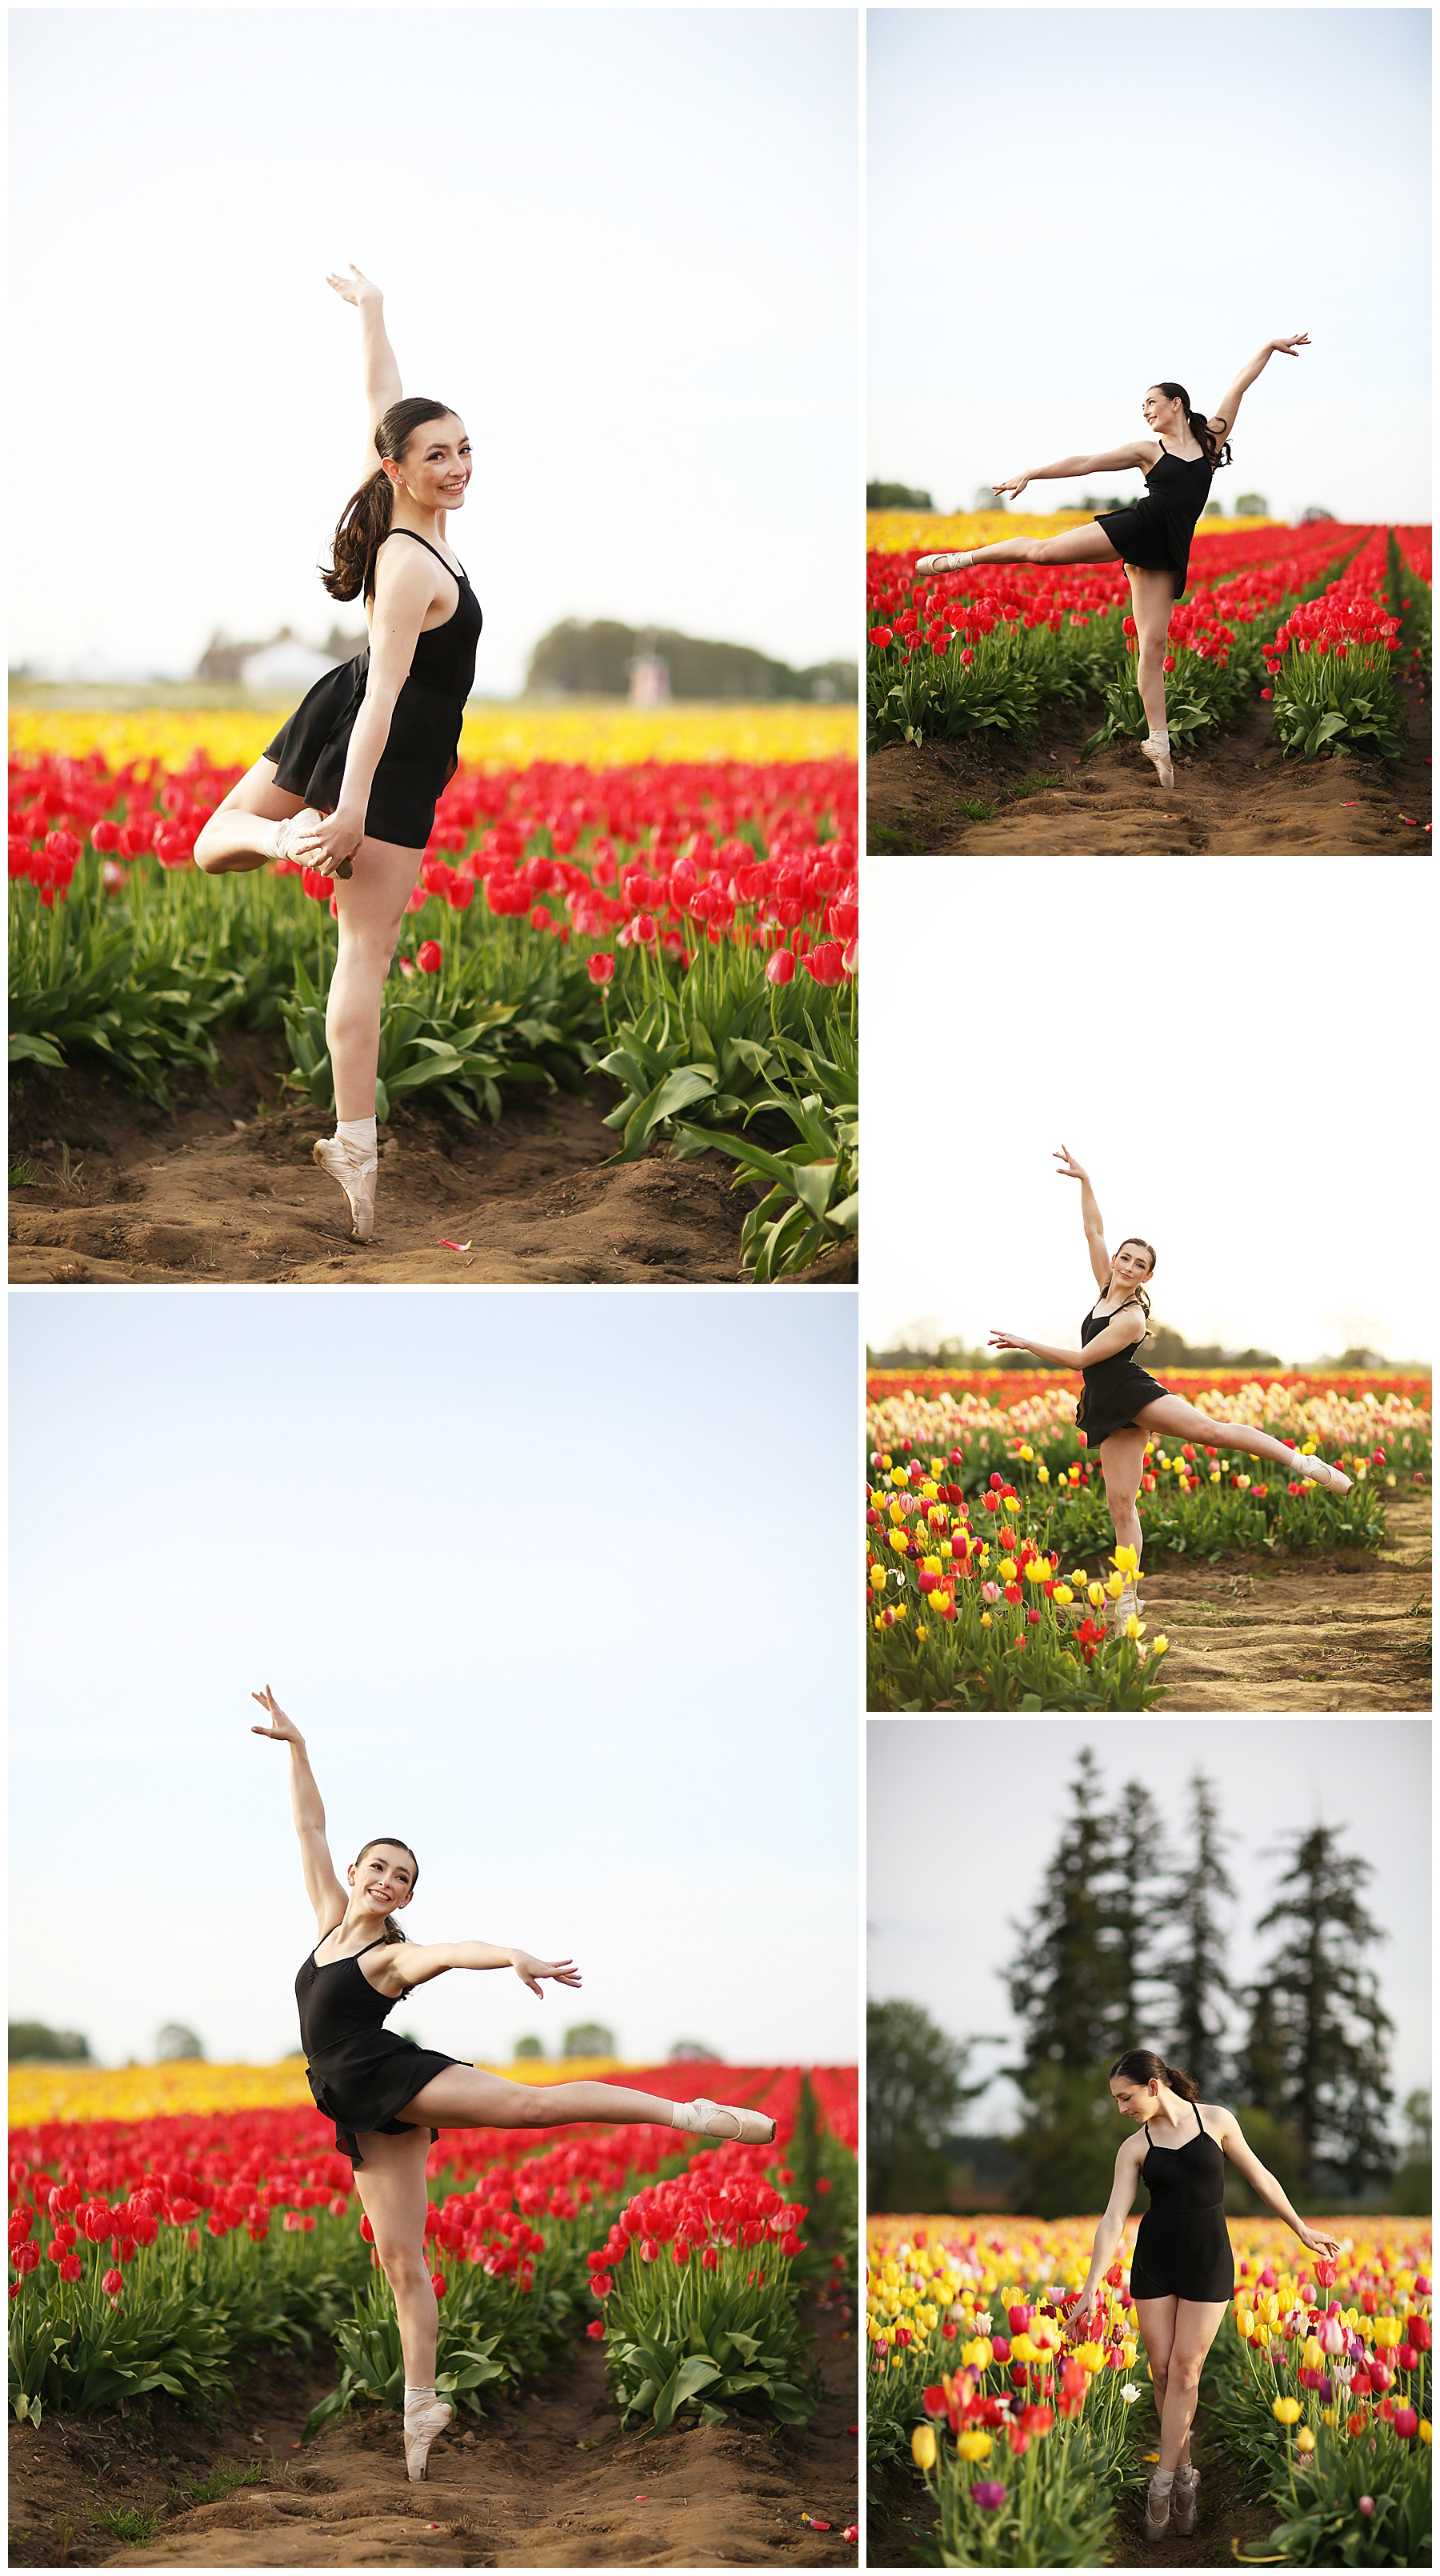 Ballet Portraits at the Tulip Festival Spring 2019 Oregon 2.jpg